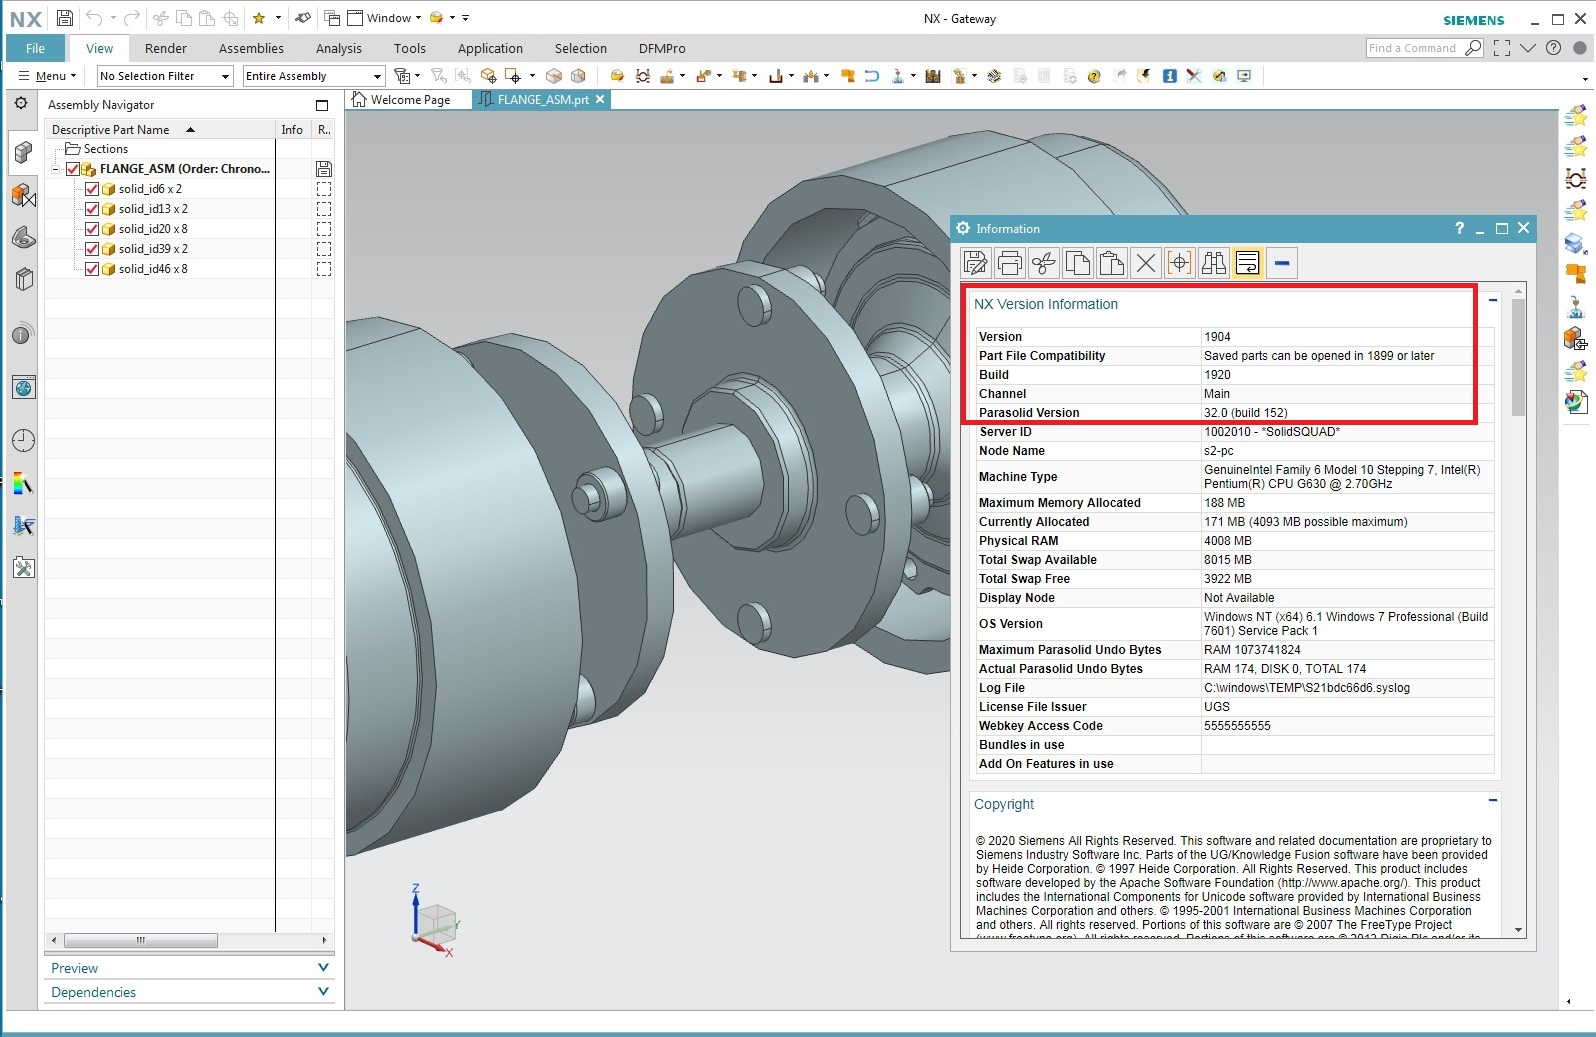 Working with Siemens NX 1904 Build 1920 full